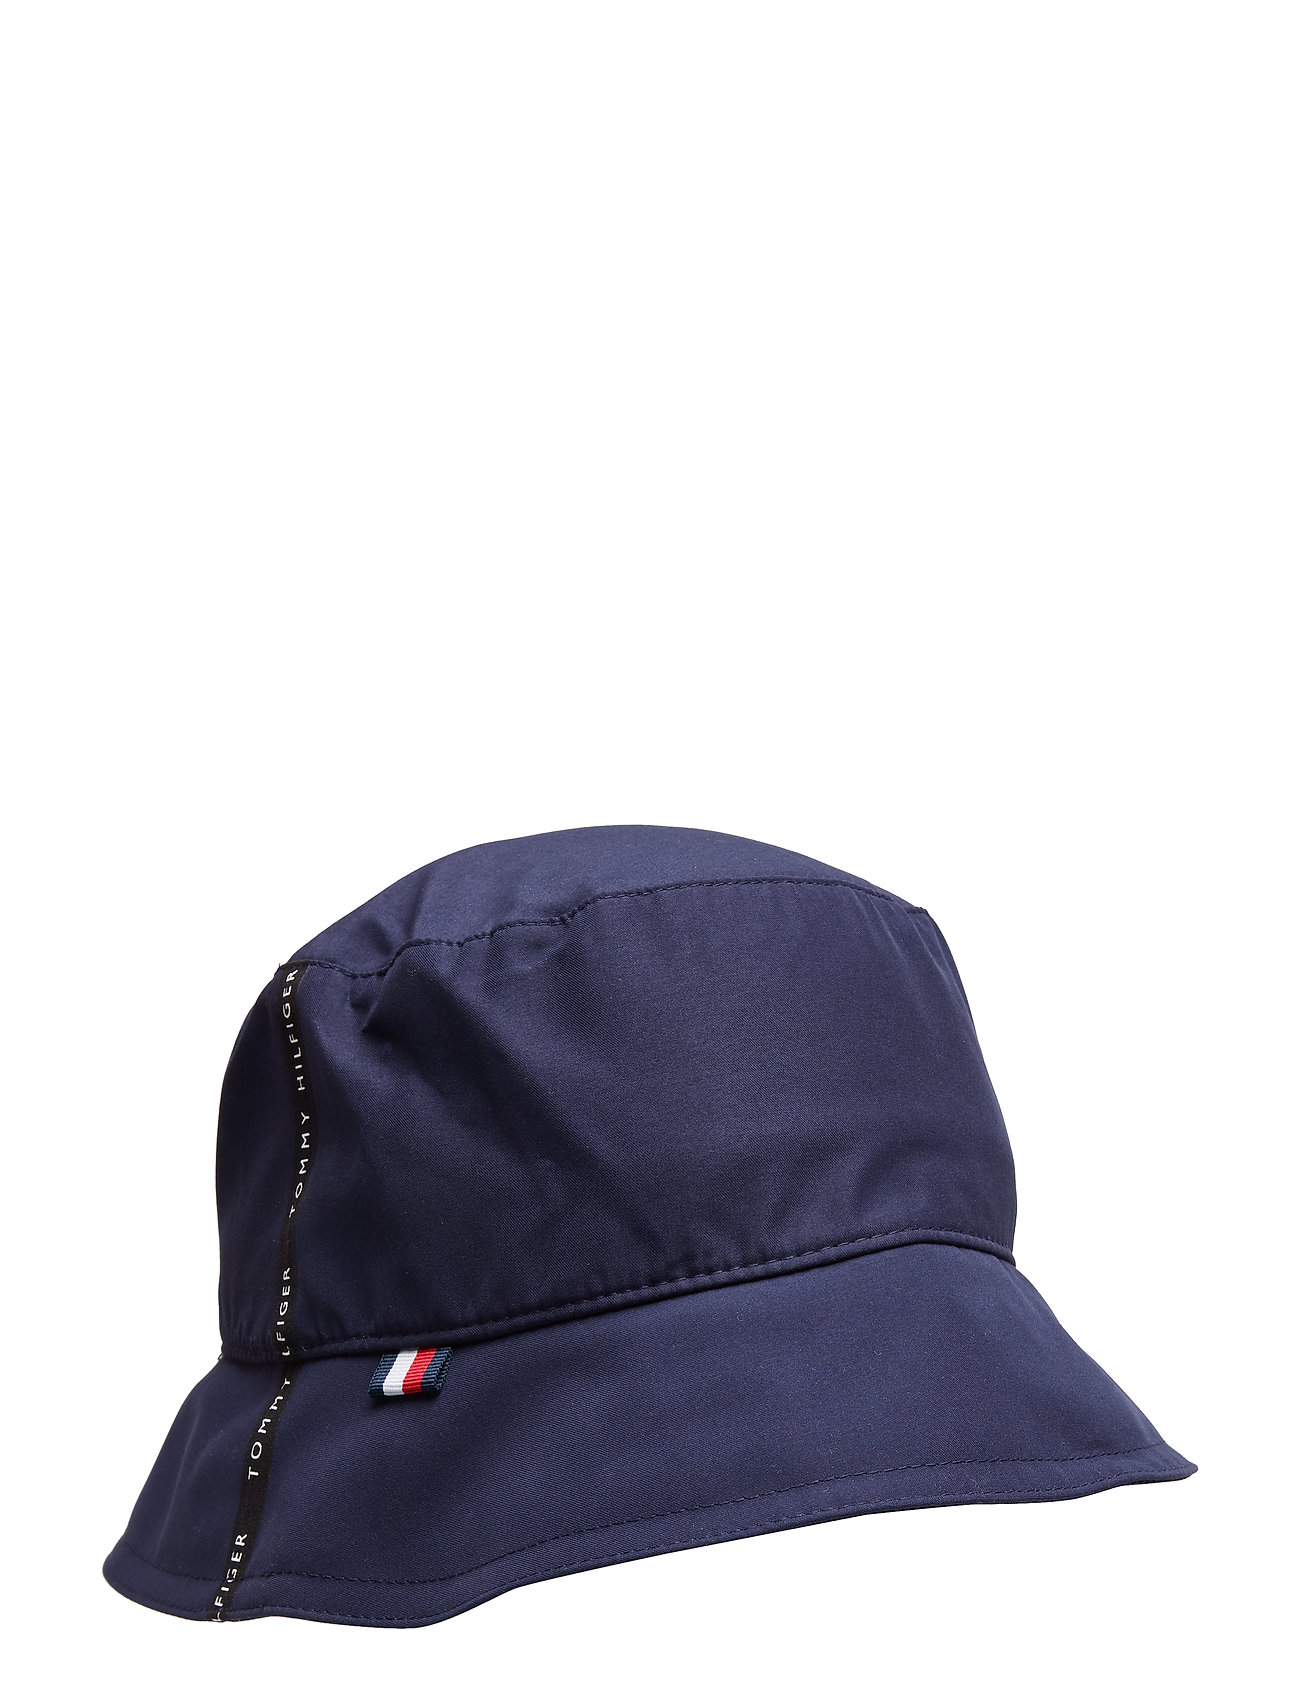 Tommy Hilfiger TAPE BUCKET HAT - BLUE QUARTZ